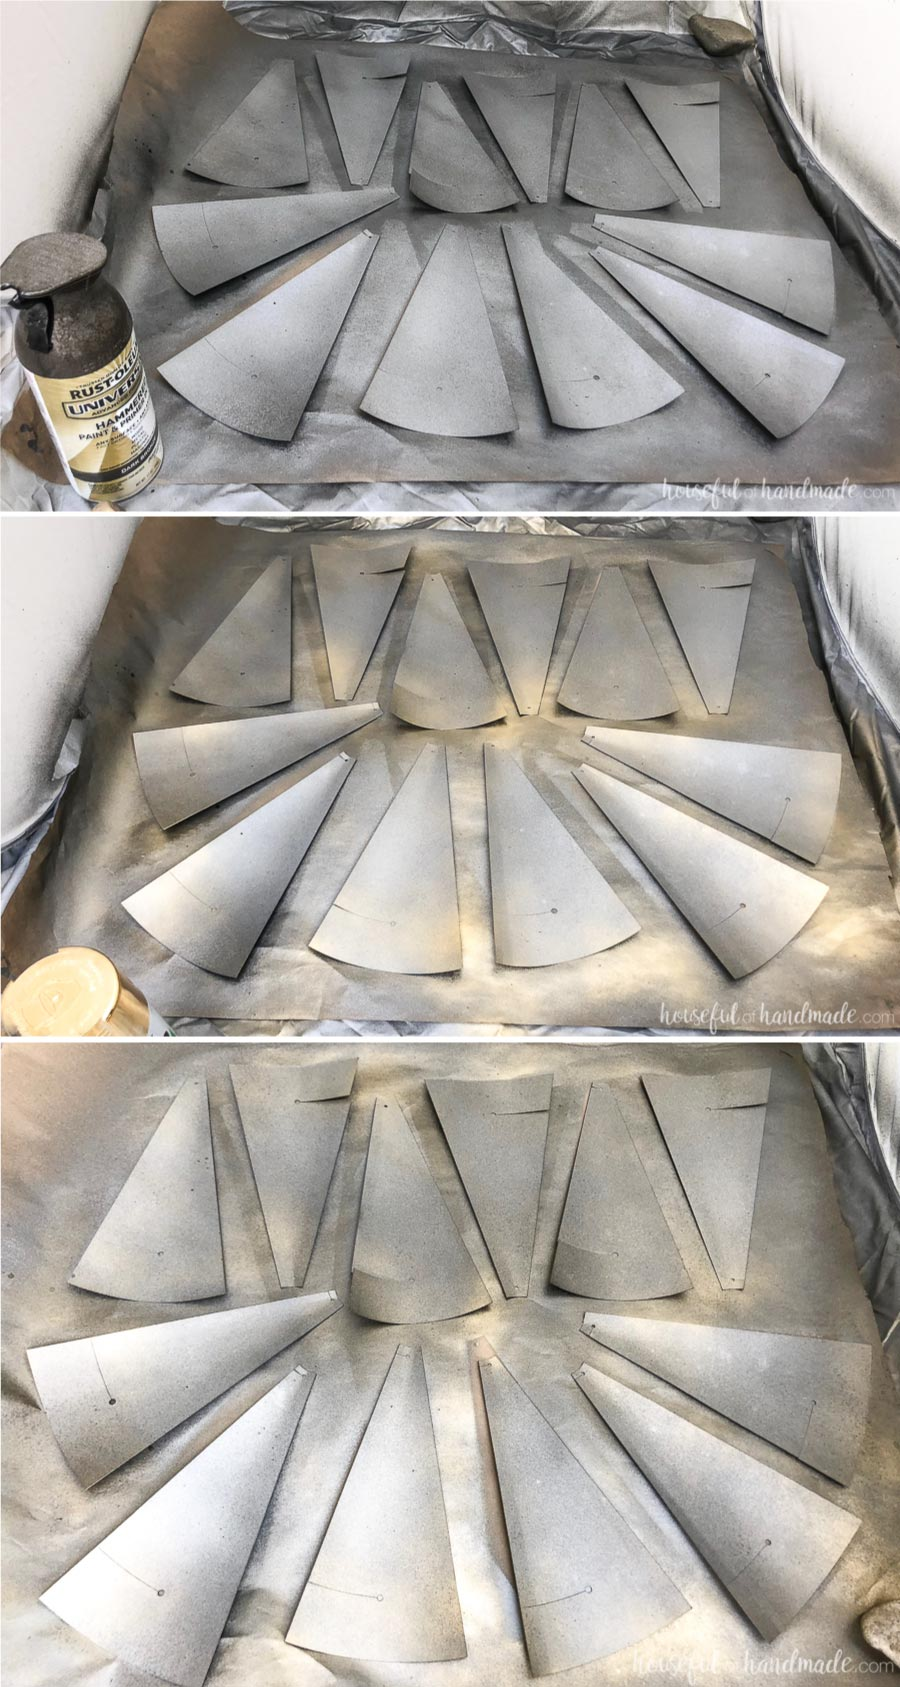 Showing the different layers of spray paint on the windmill blades to create a rustic decorative windmill.